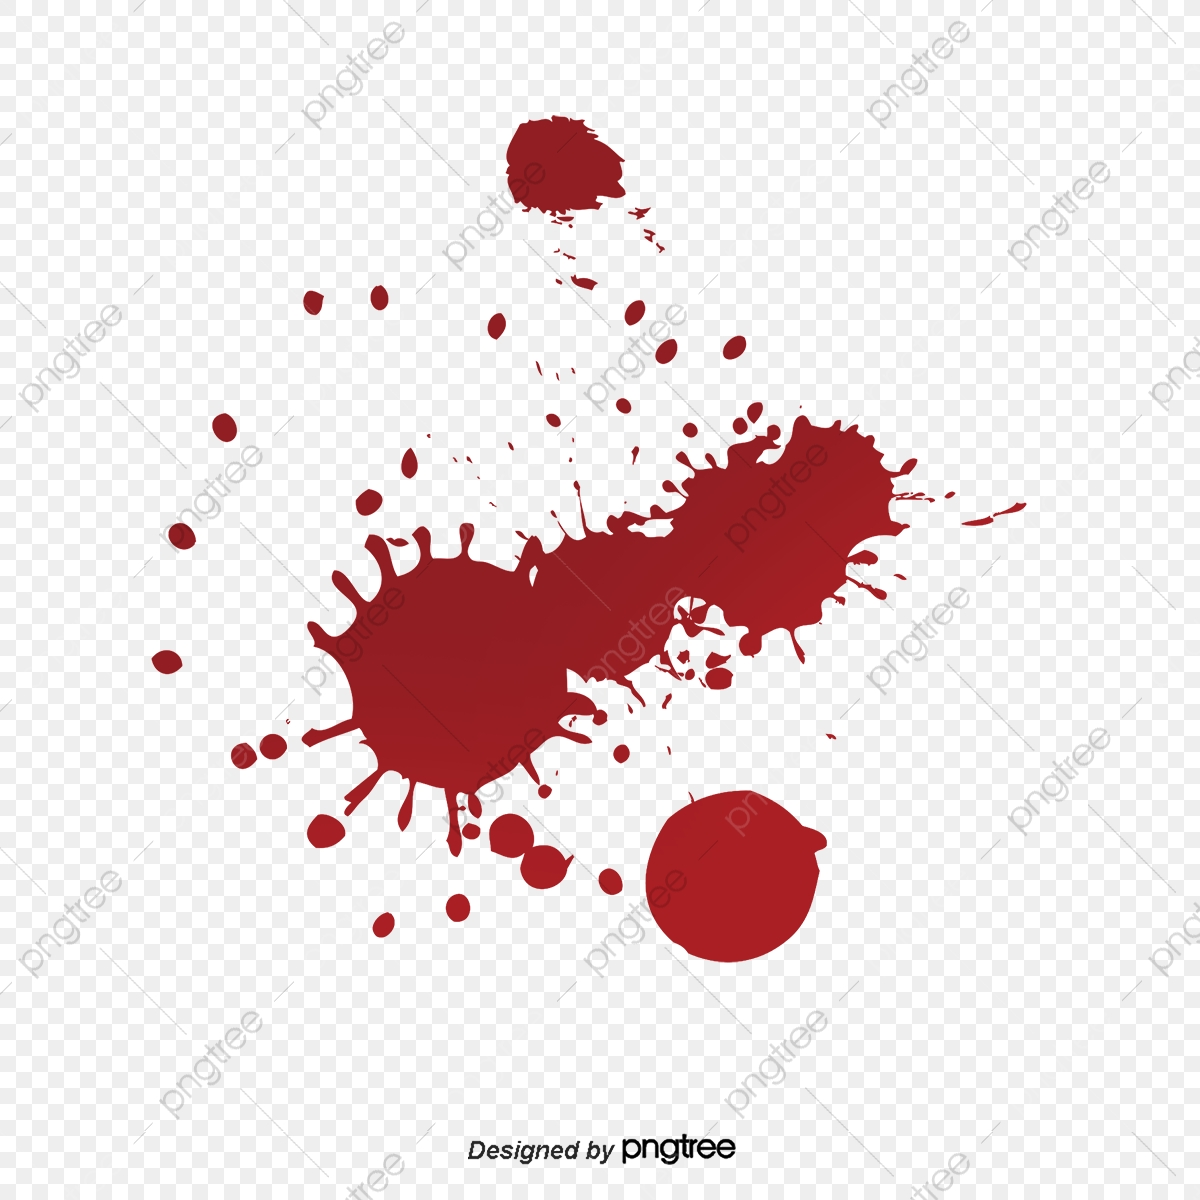 Bloodstain Blood Drop Stains Png Transparent Clipart Image And Psd File For Free Download You may use this design to print shirts. https pngtree com freepng bloodstain 646395 html